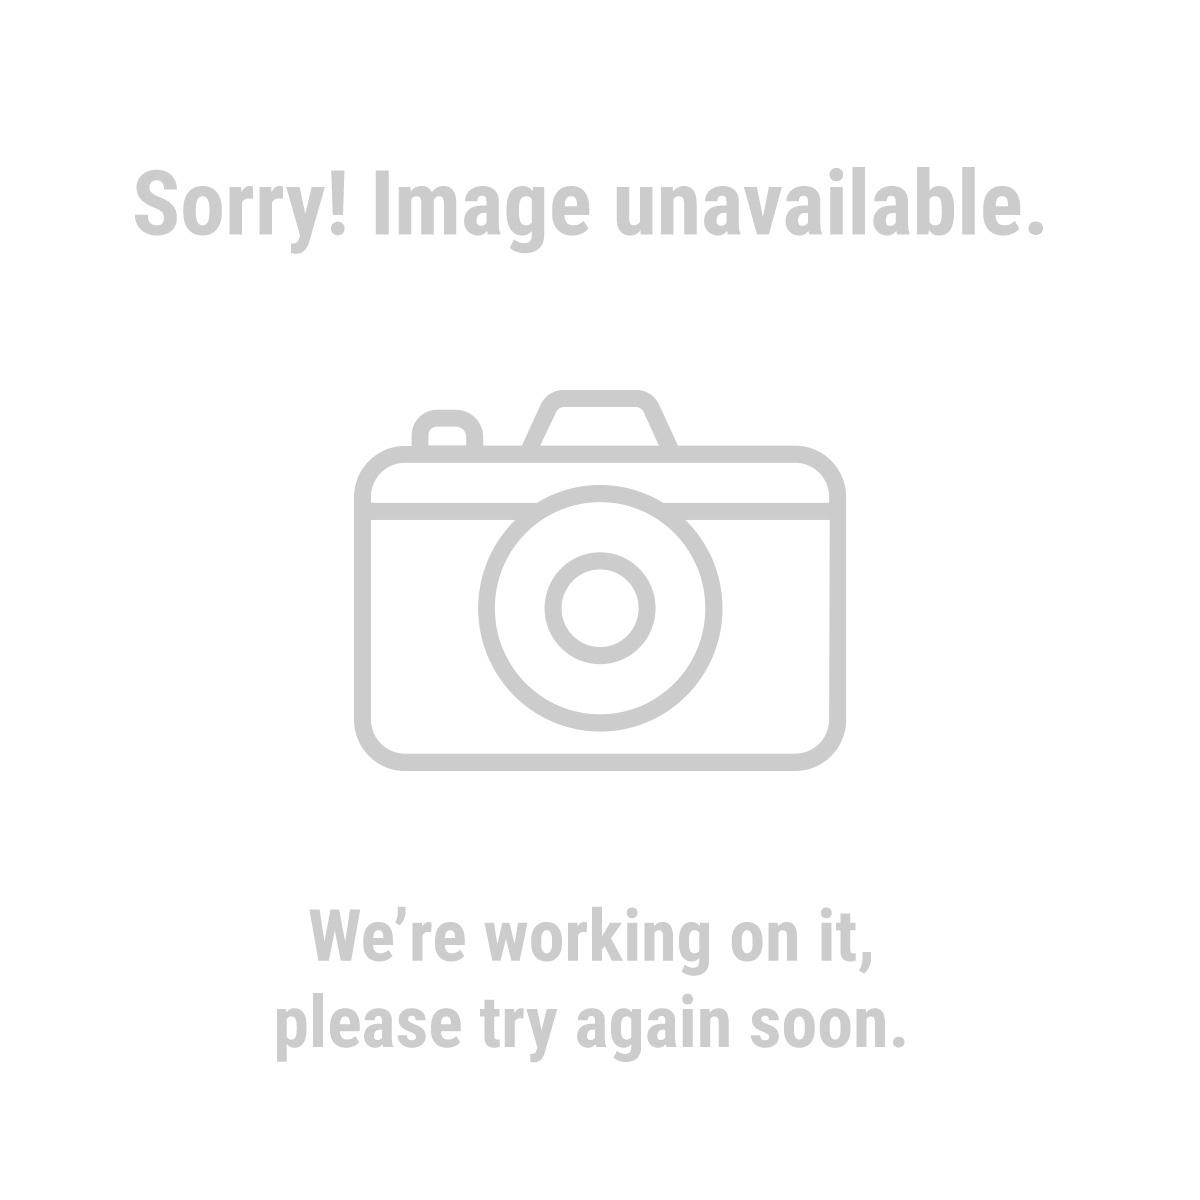 Krause & Becker 61957 3 in. Professional Paint Brush